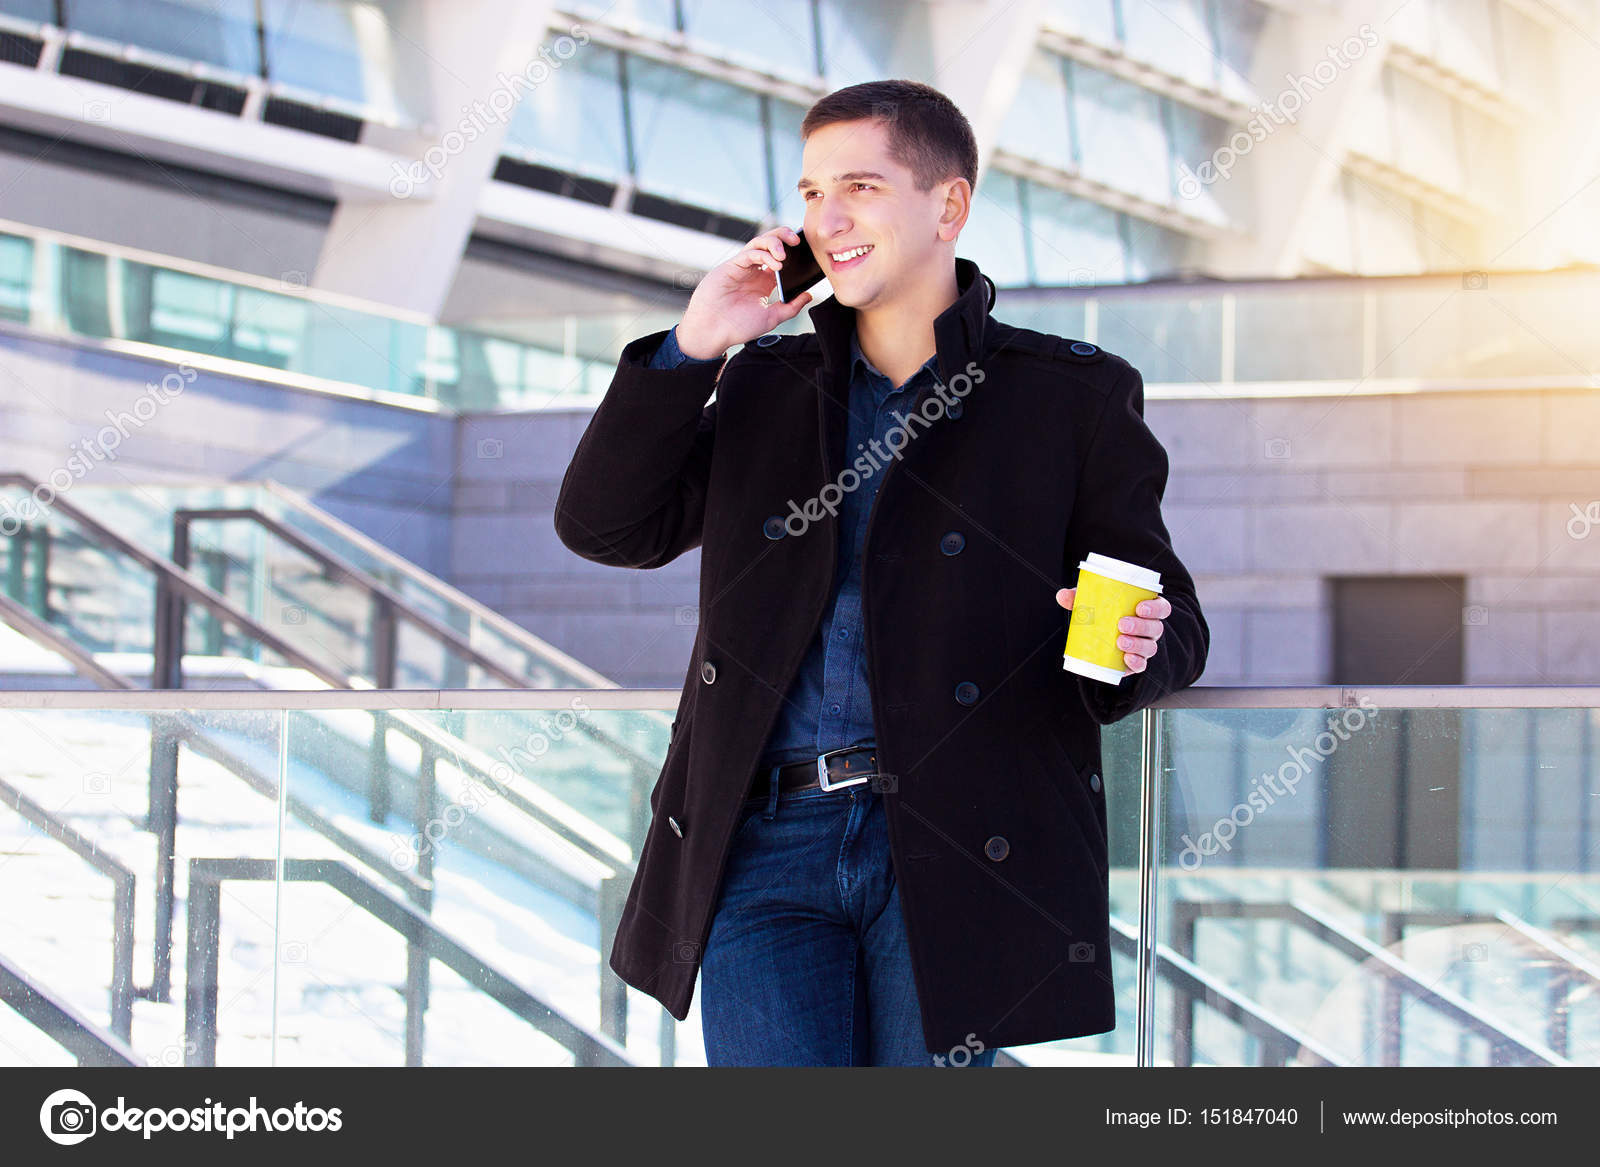 278c900ba1dd Let s talk. Portrait of young and handsome business man talking the phone  while drinking coffee